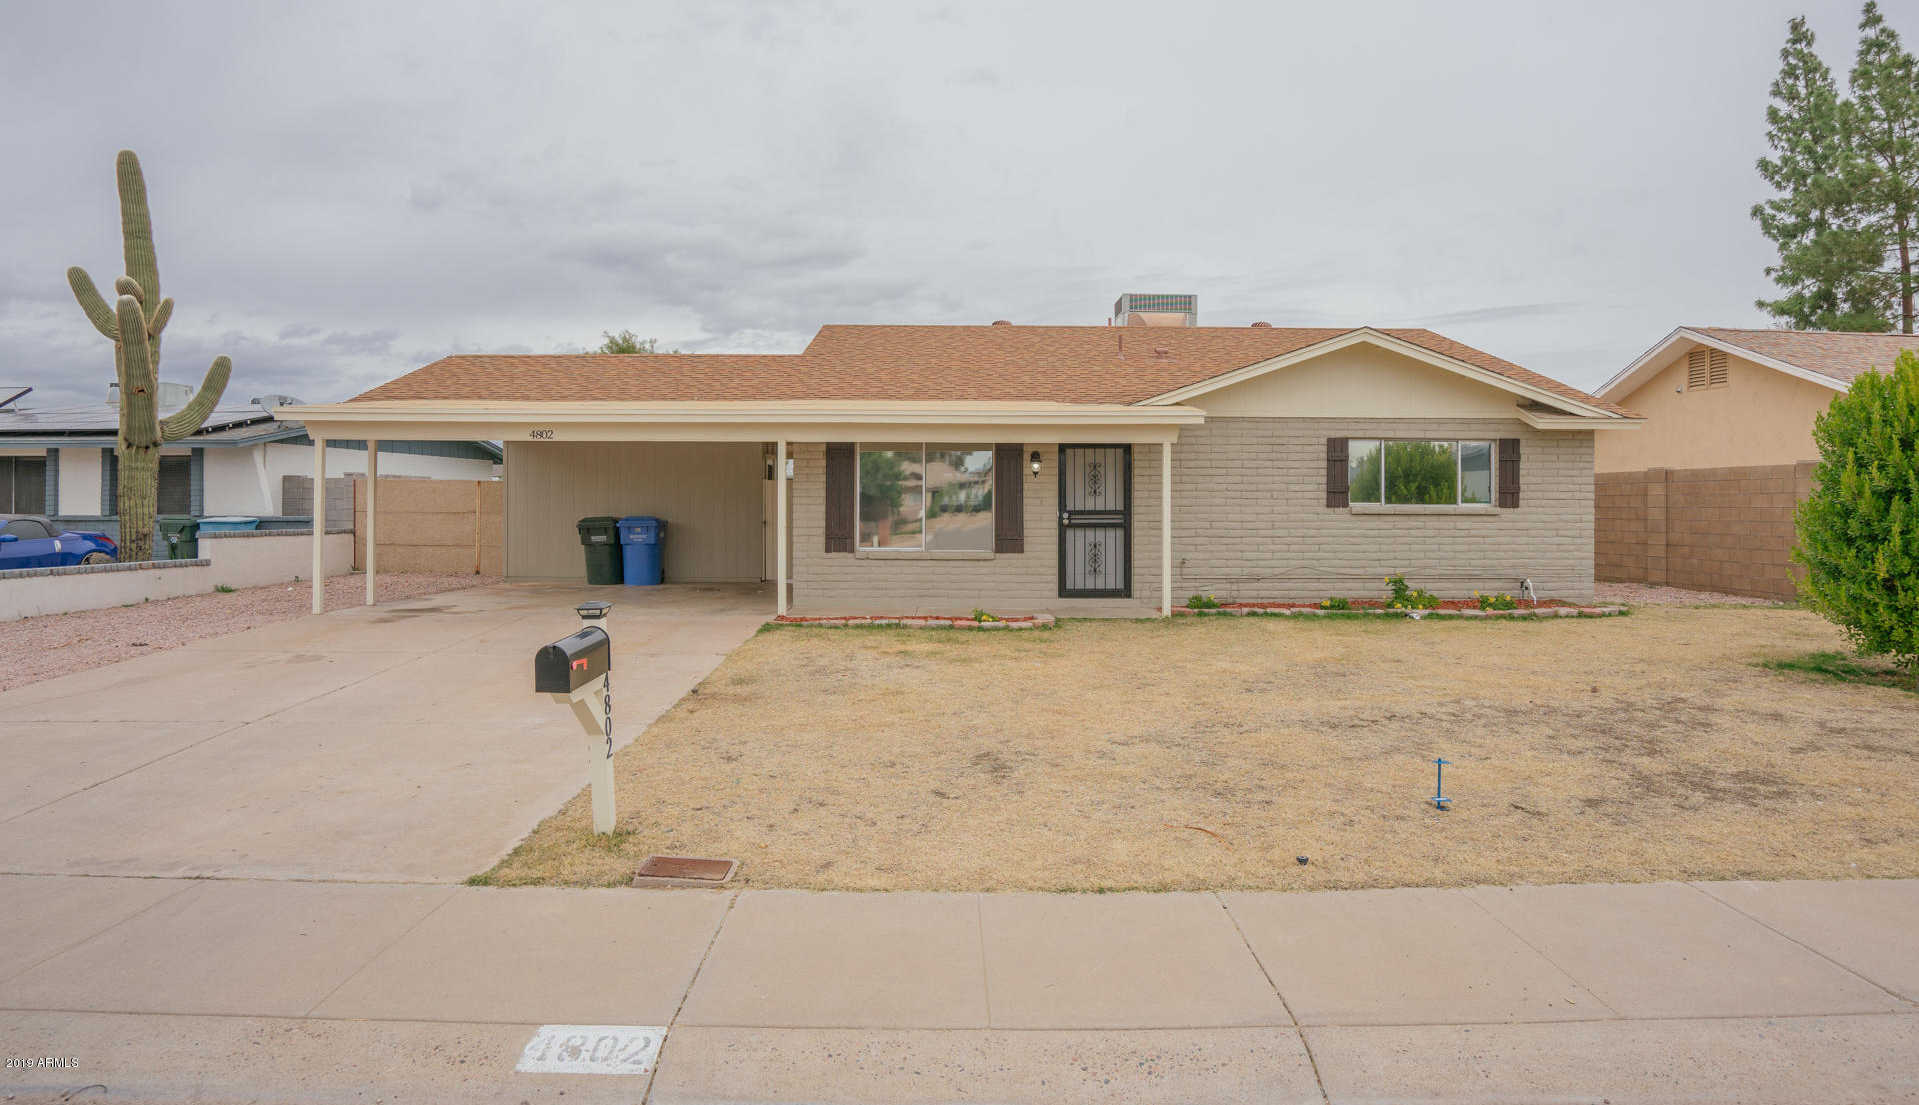 $219,000 - 4Br/2Ba - Home for Sale in Continental North 8 Lot 459-749, Glendale